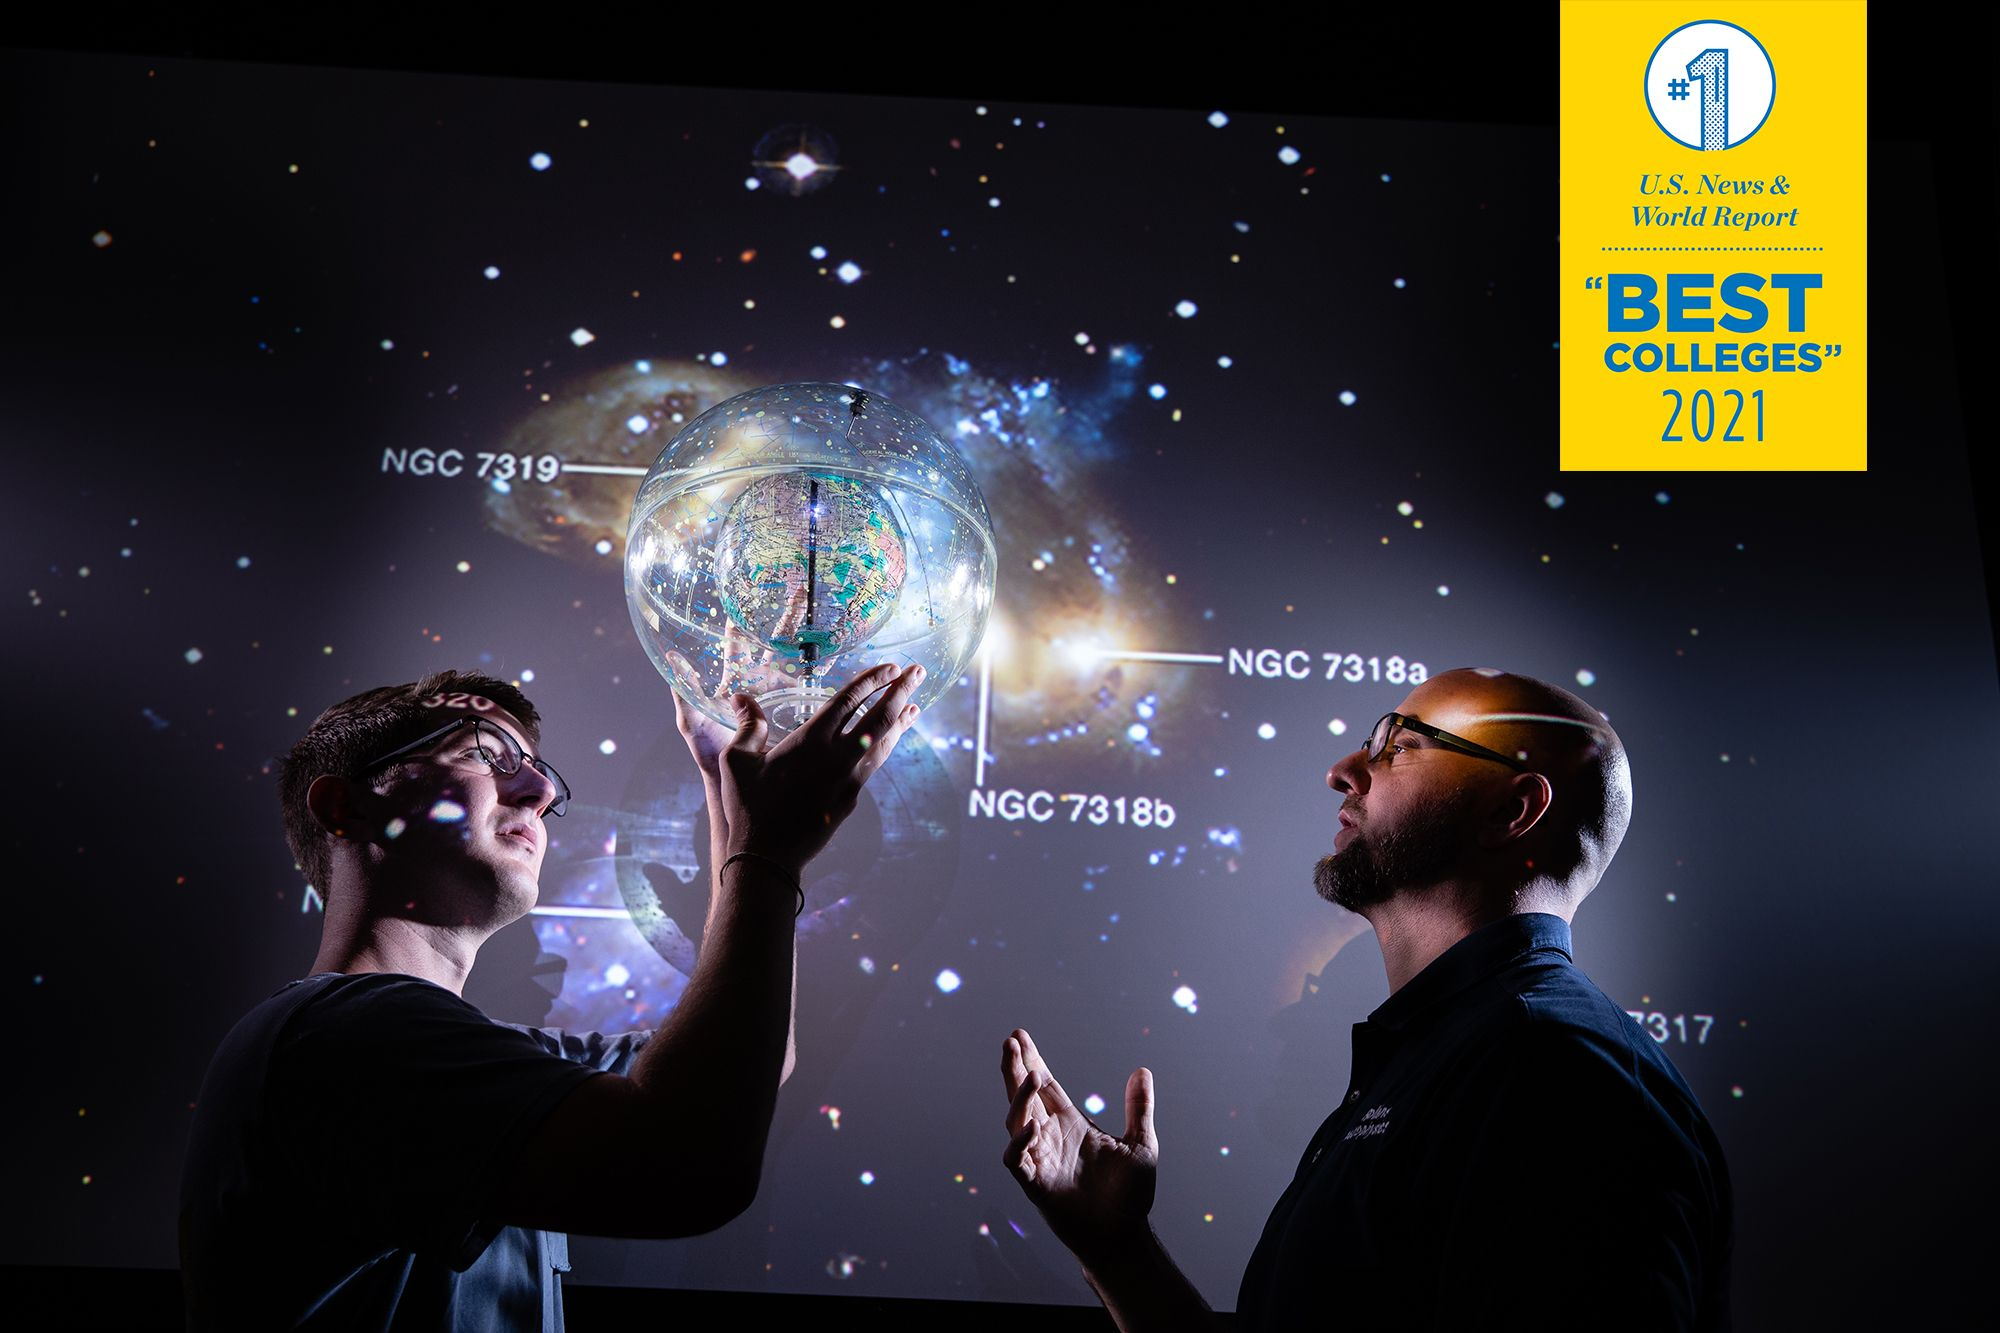 Physics professor and student exploring the universal via digital projection.